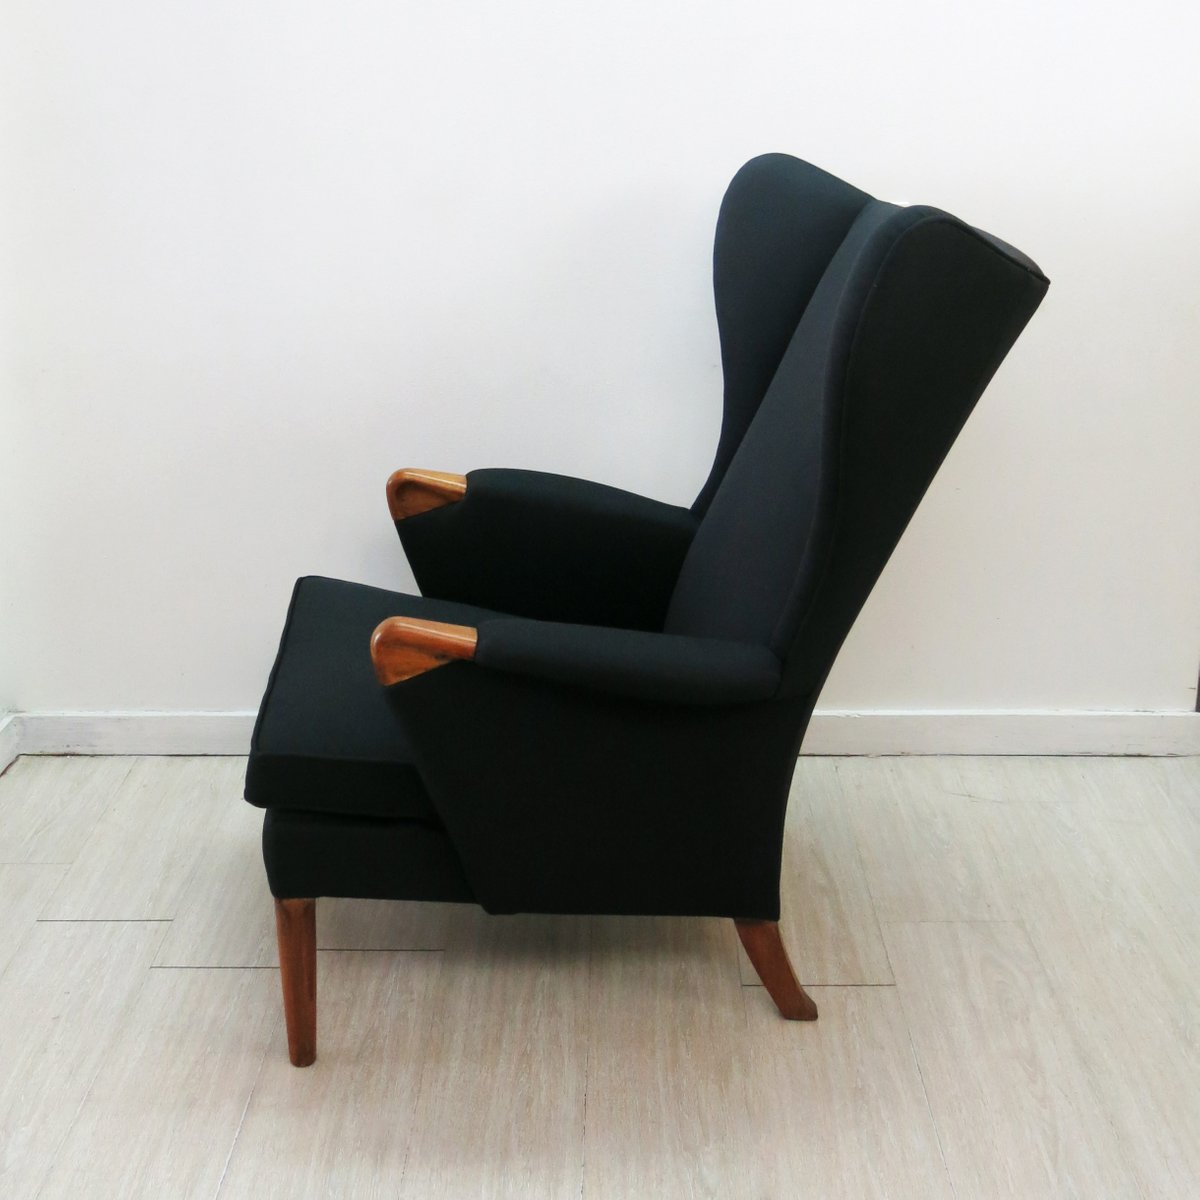 Black Wingback Chair with Teak Legs from Parker Knoll